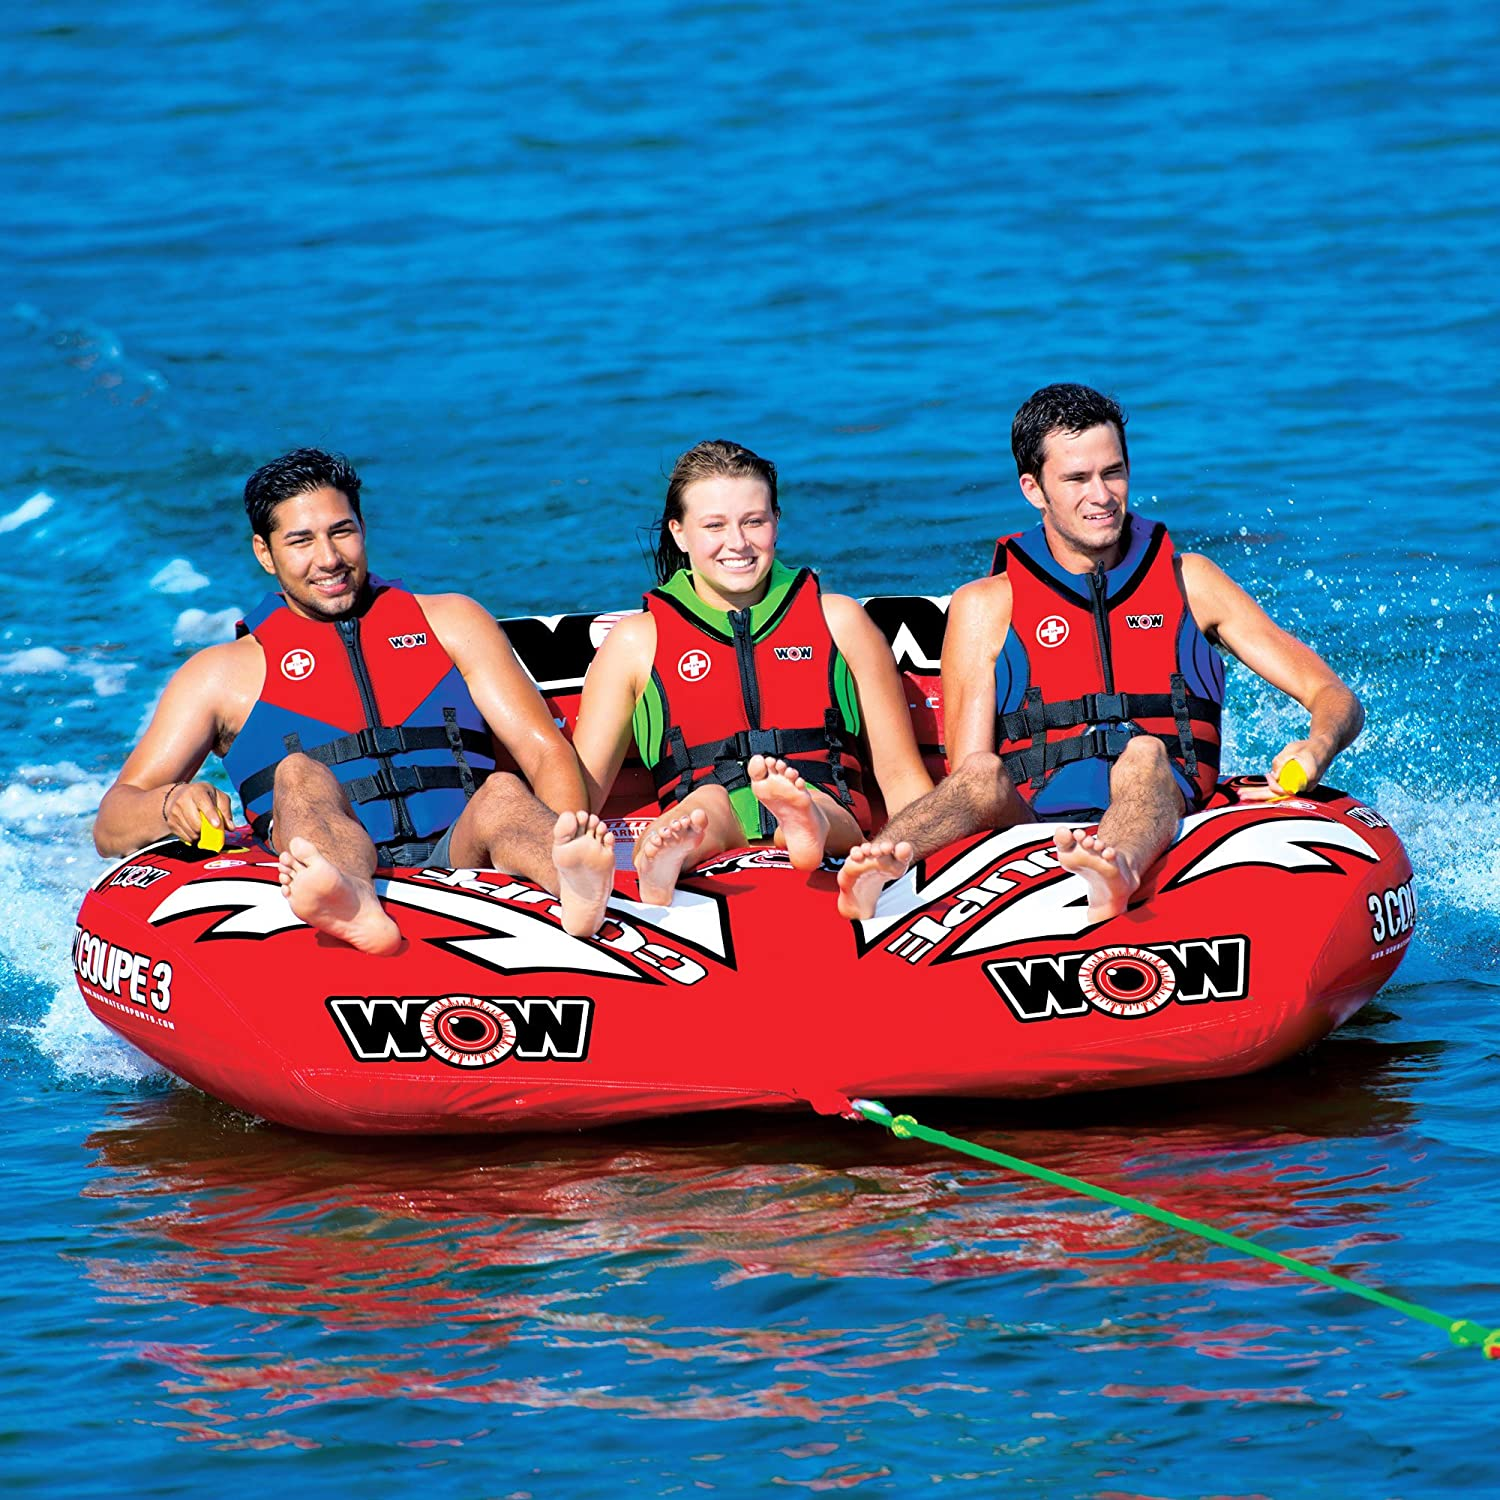 Durable Watersport 1 to 2 Person Coupe Cockpit Towable Tube with Backrest